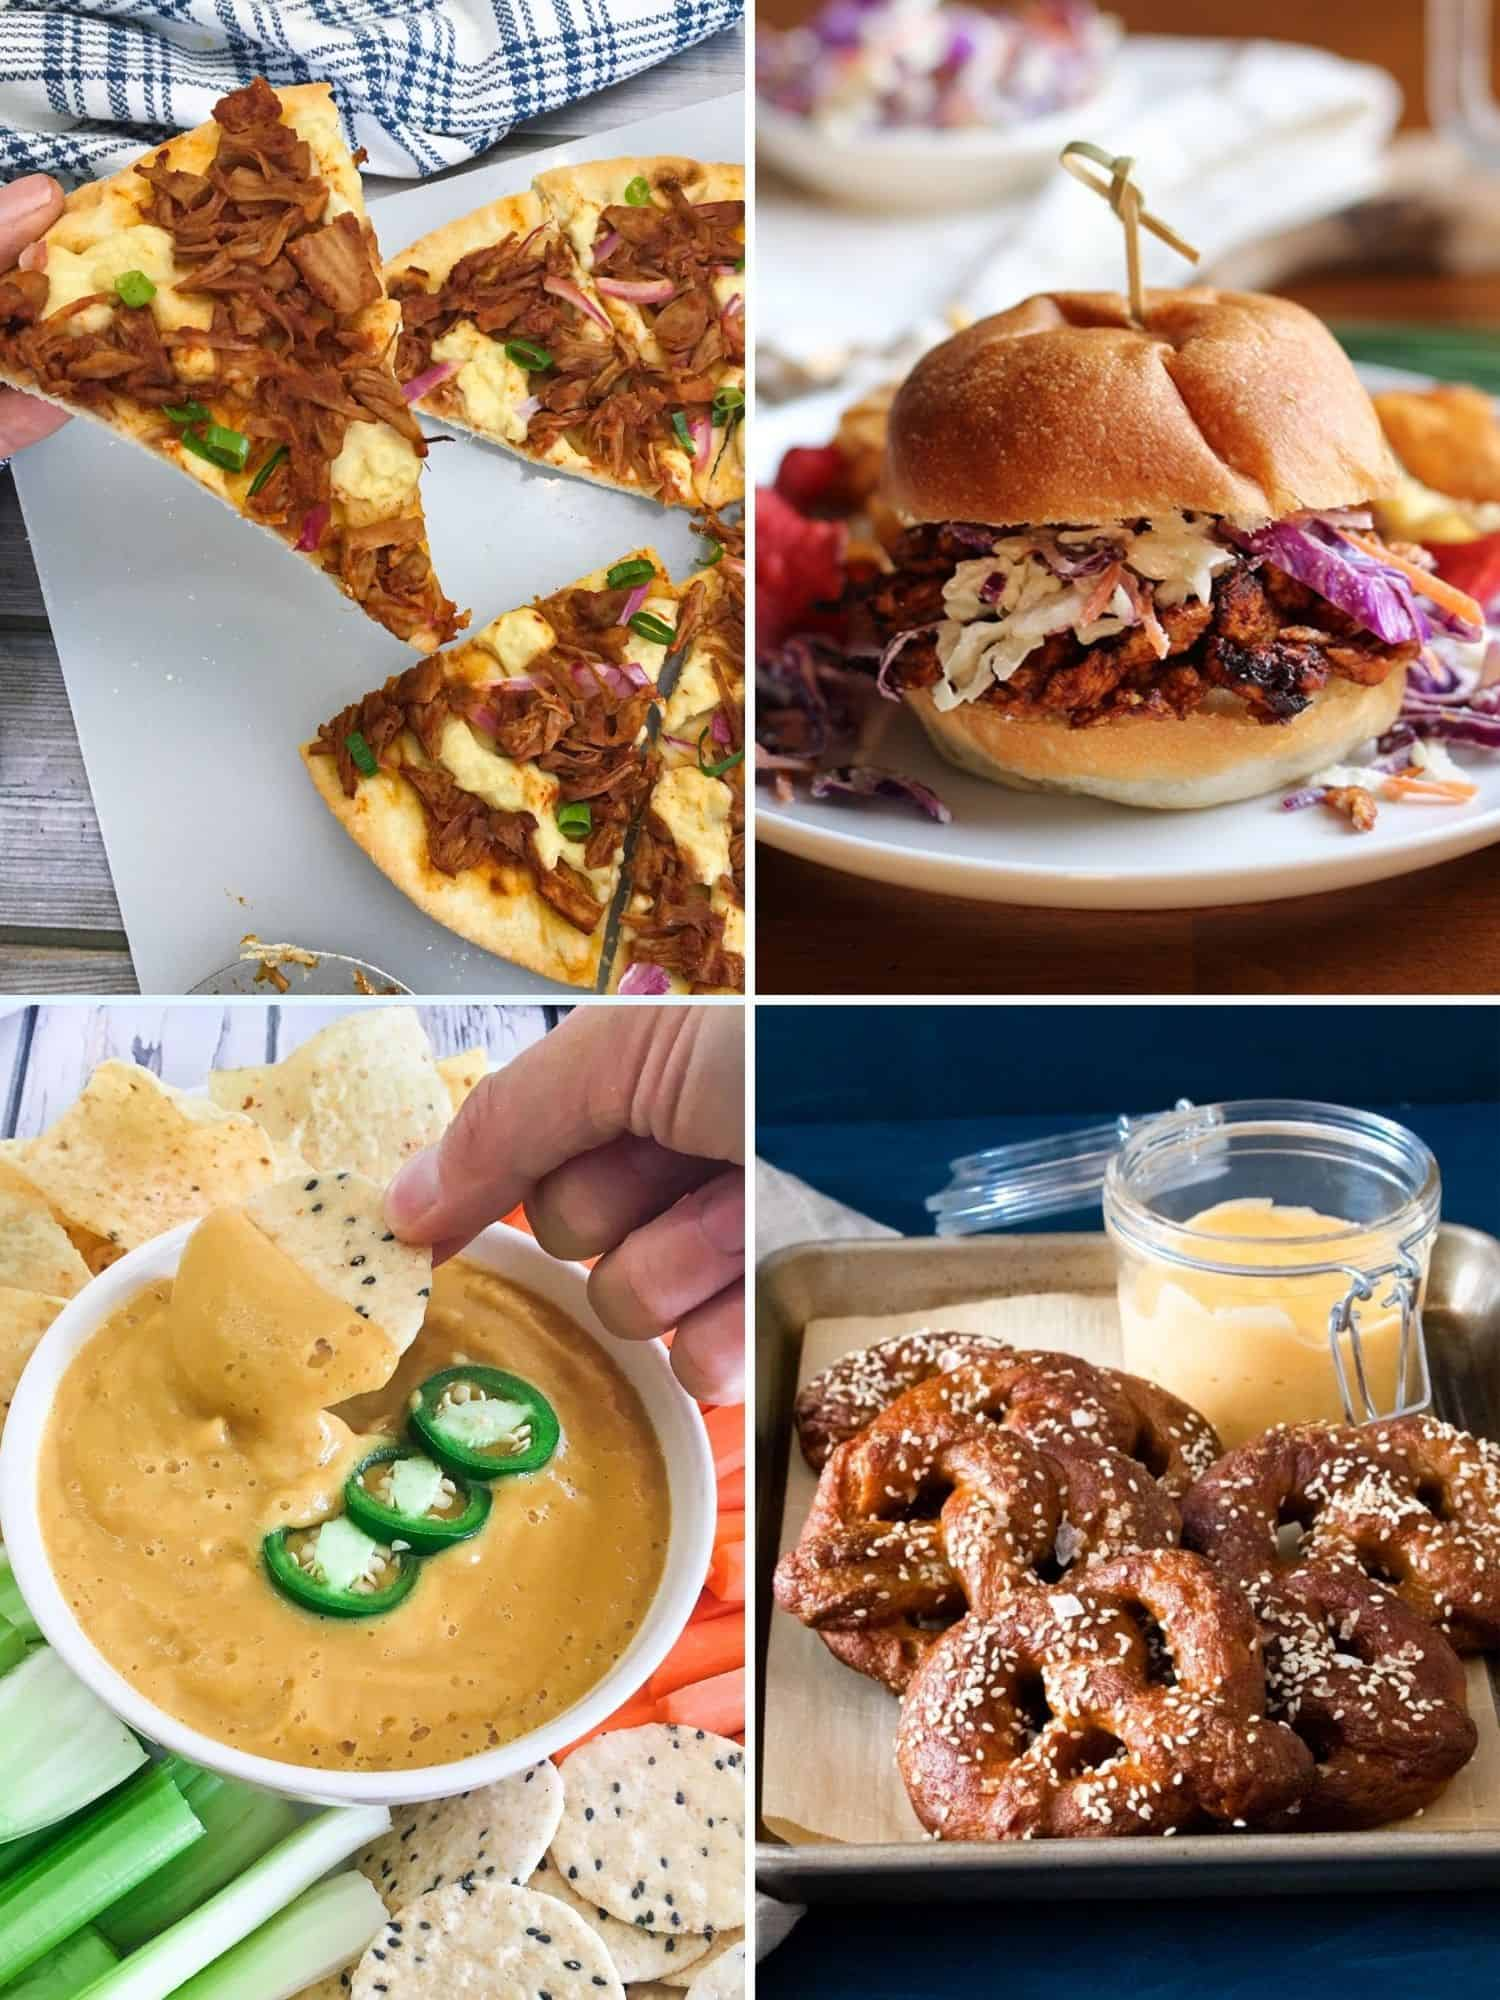 Collage of vegan superbowl food: pizza, sandwich, cheese dip, soft pretzels.